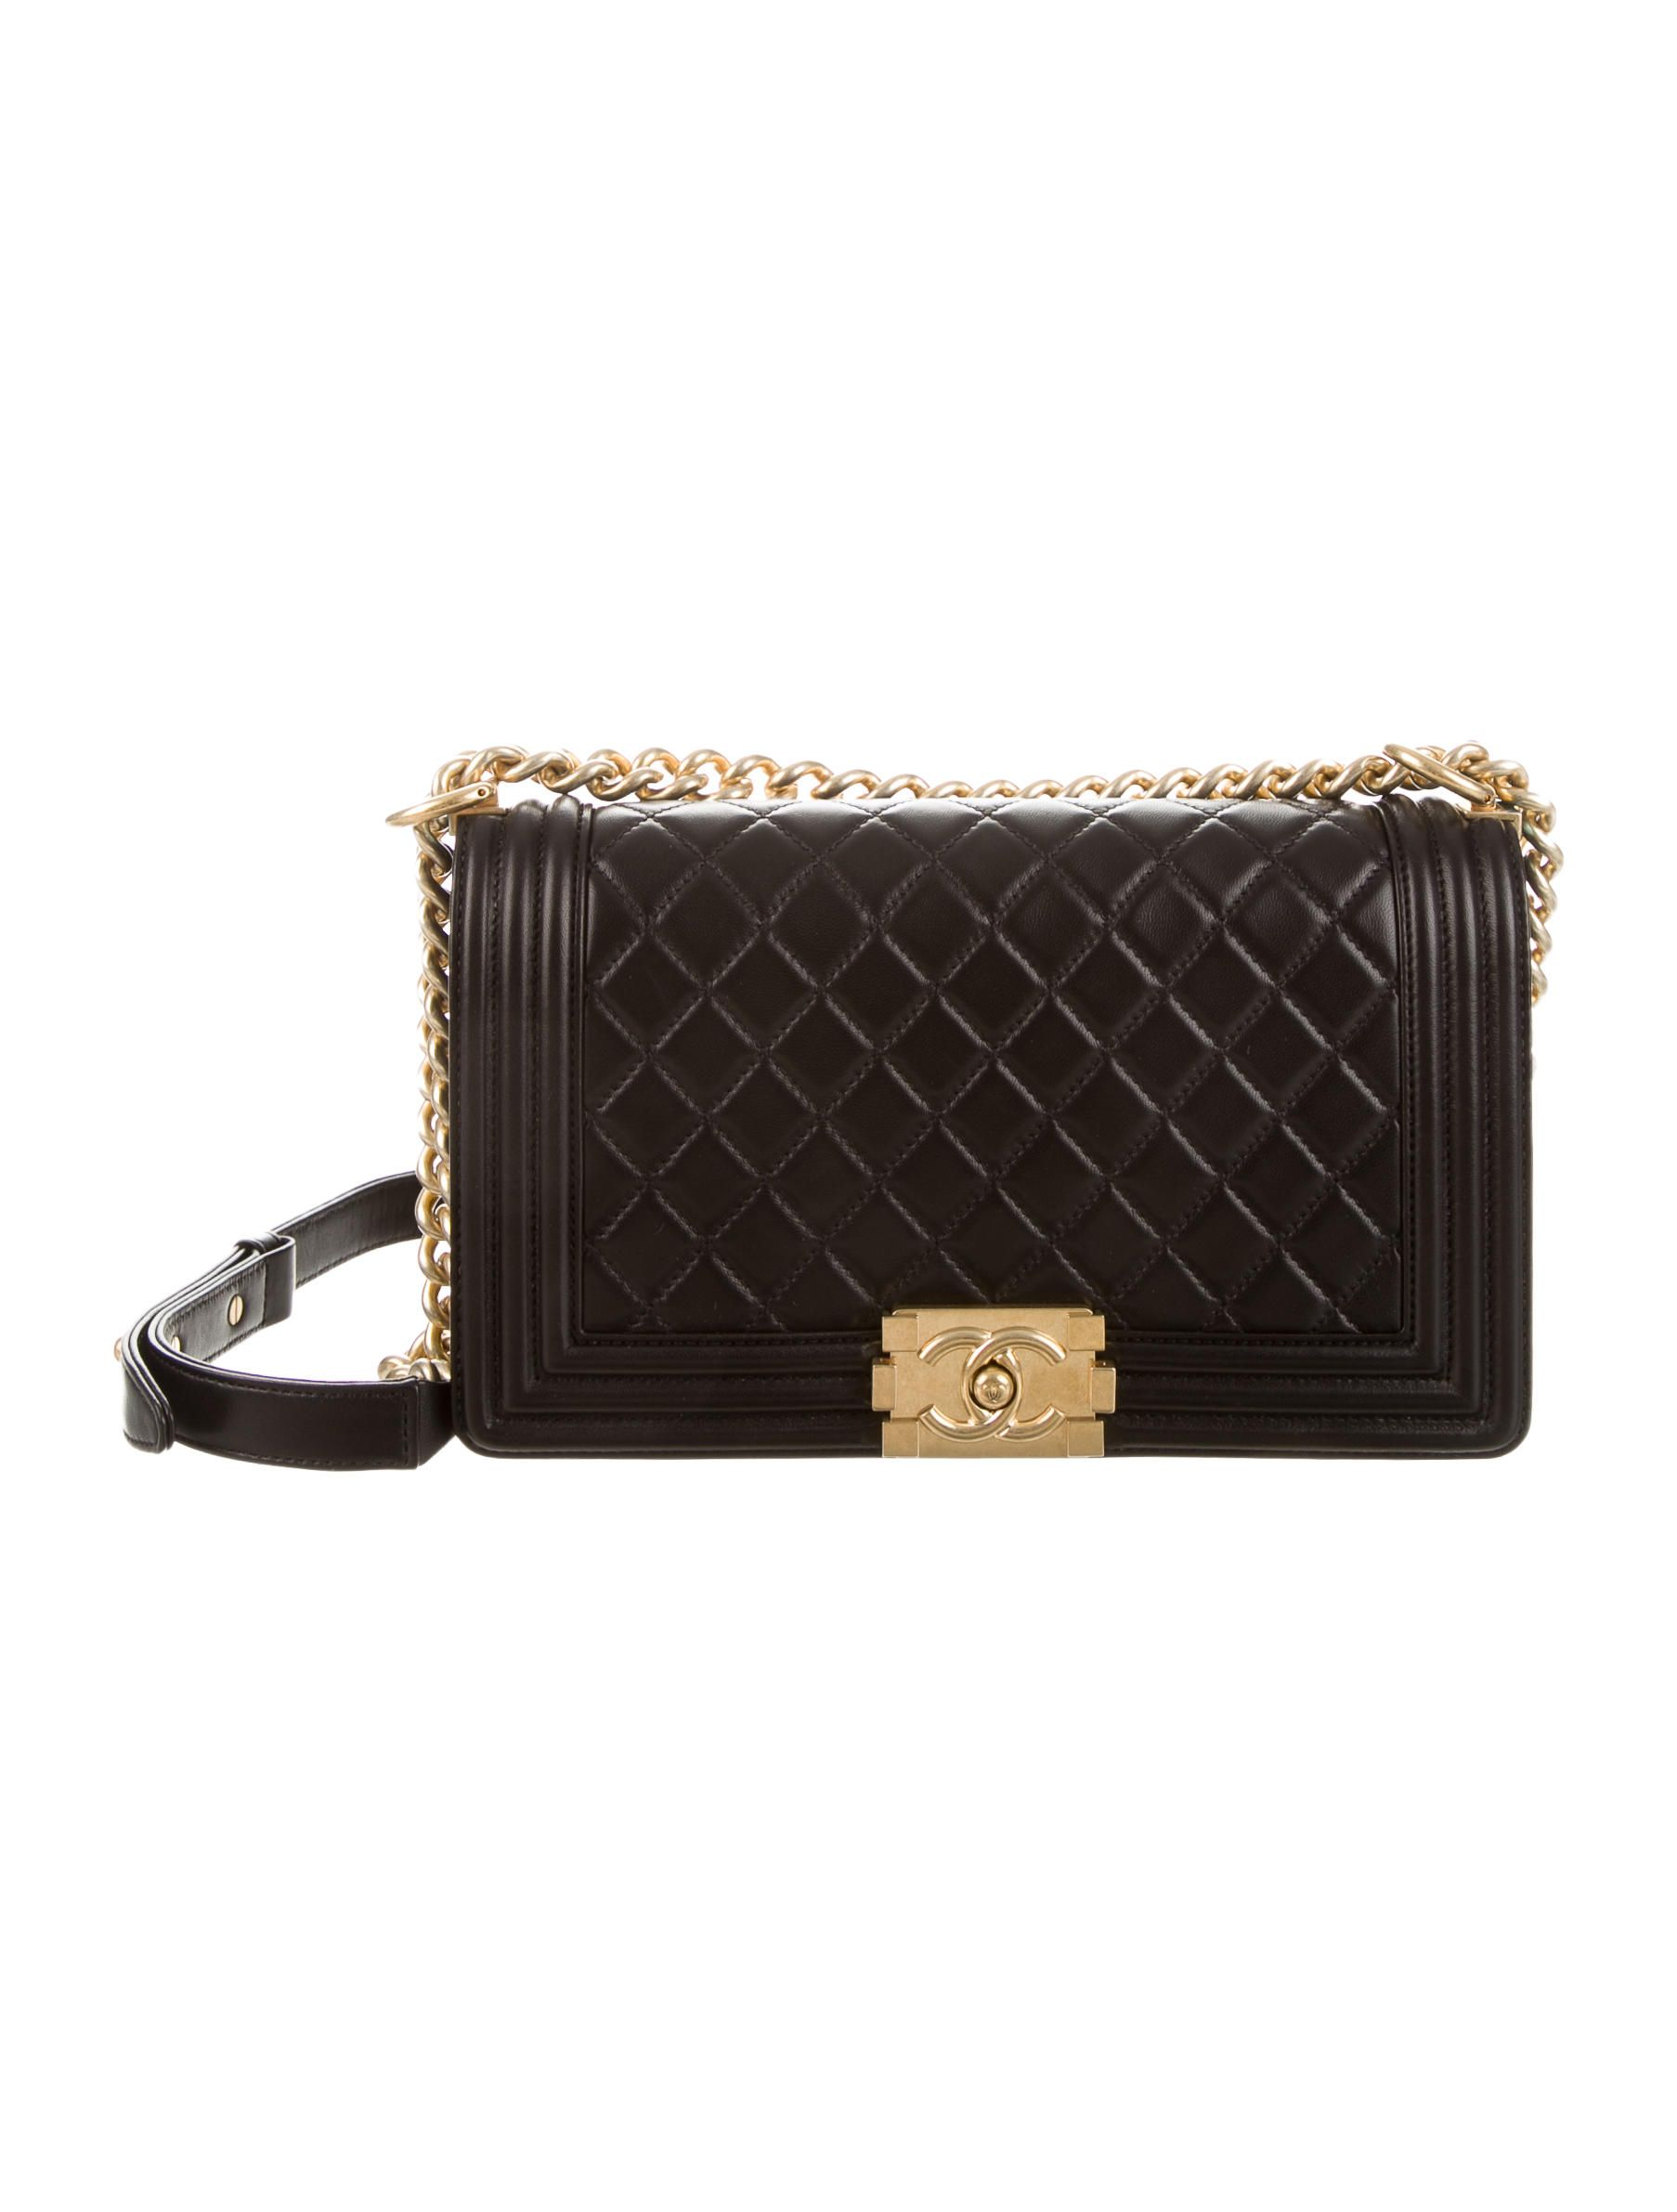 chanel-boy-bag-medium-black-quilted-leather